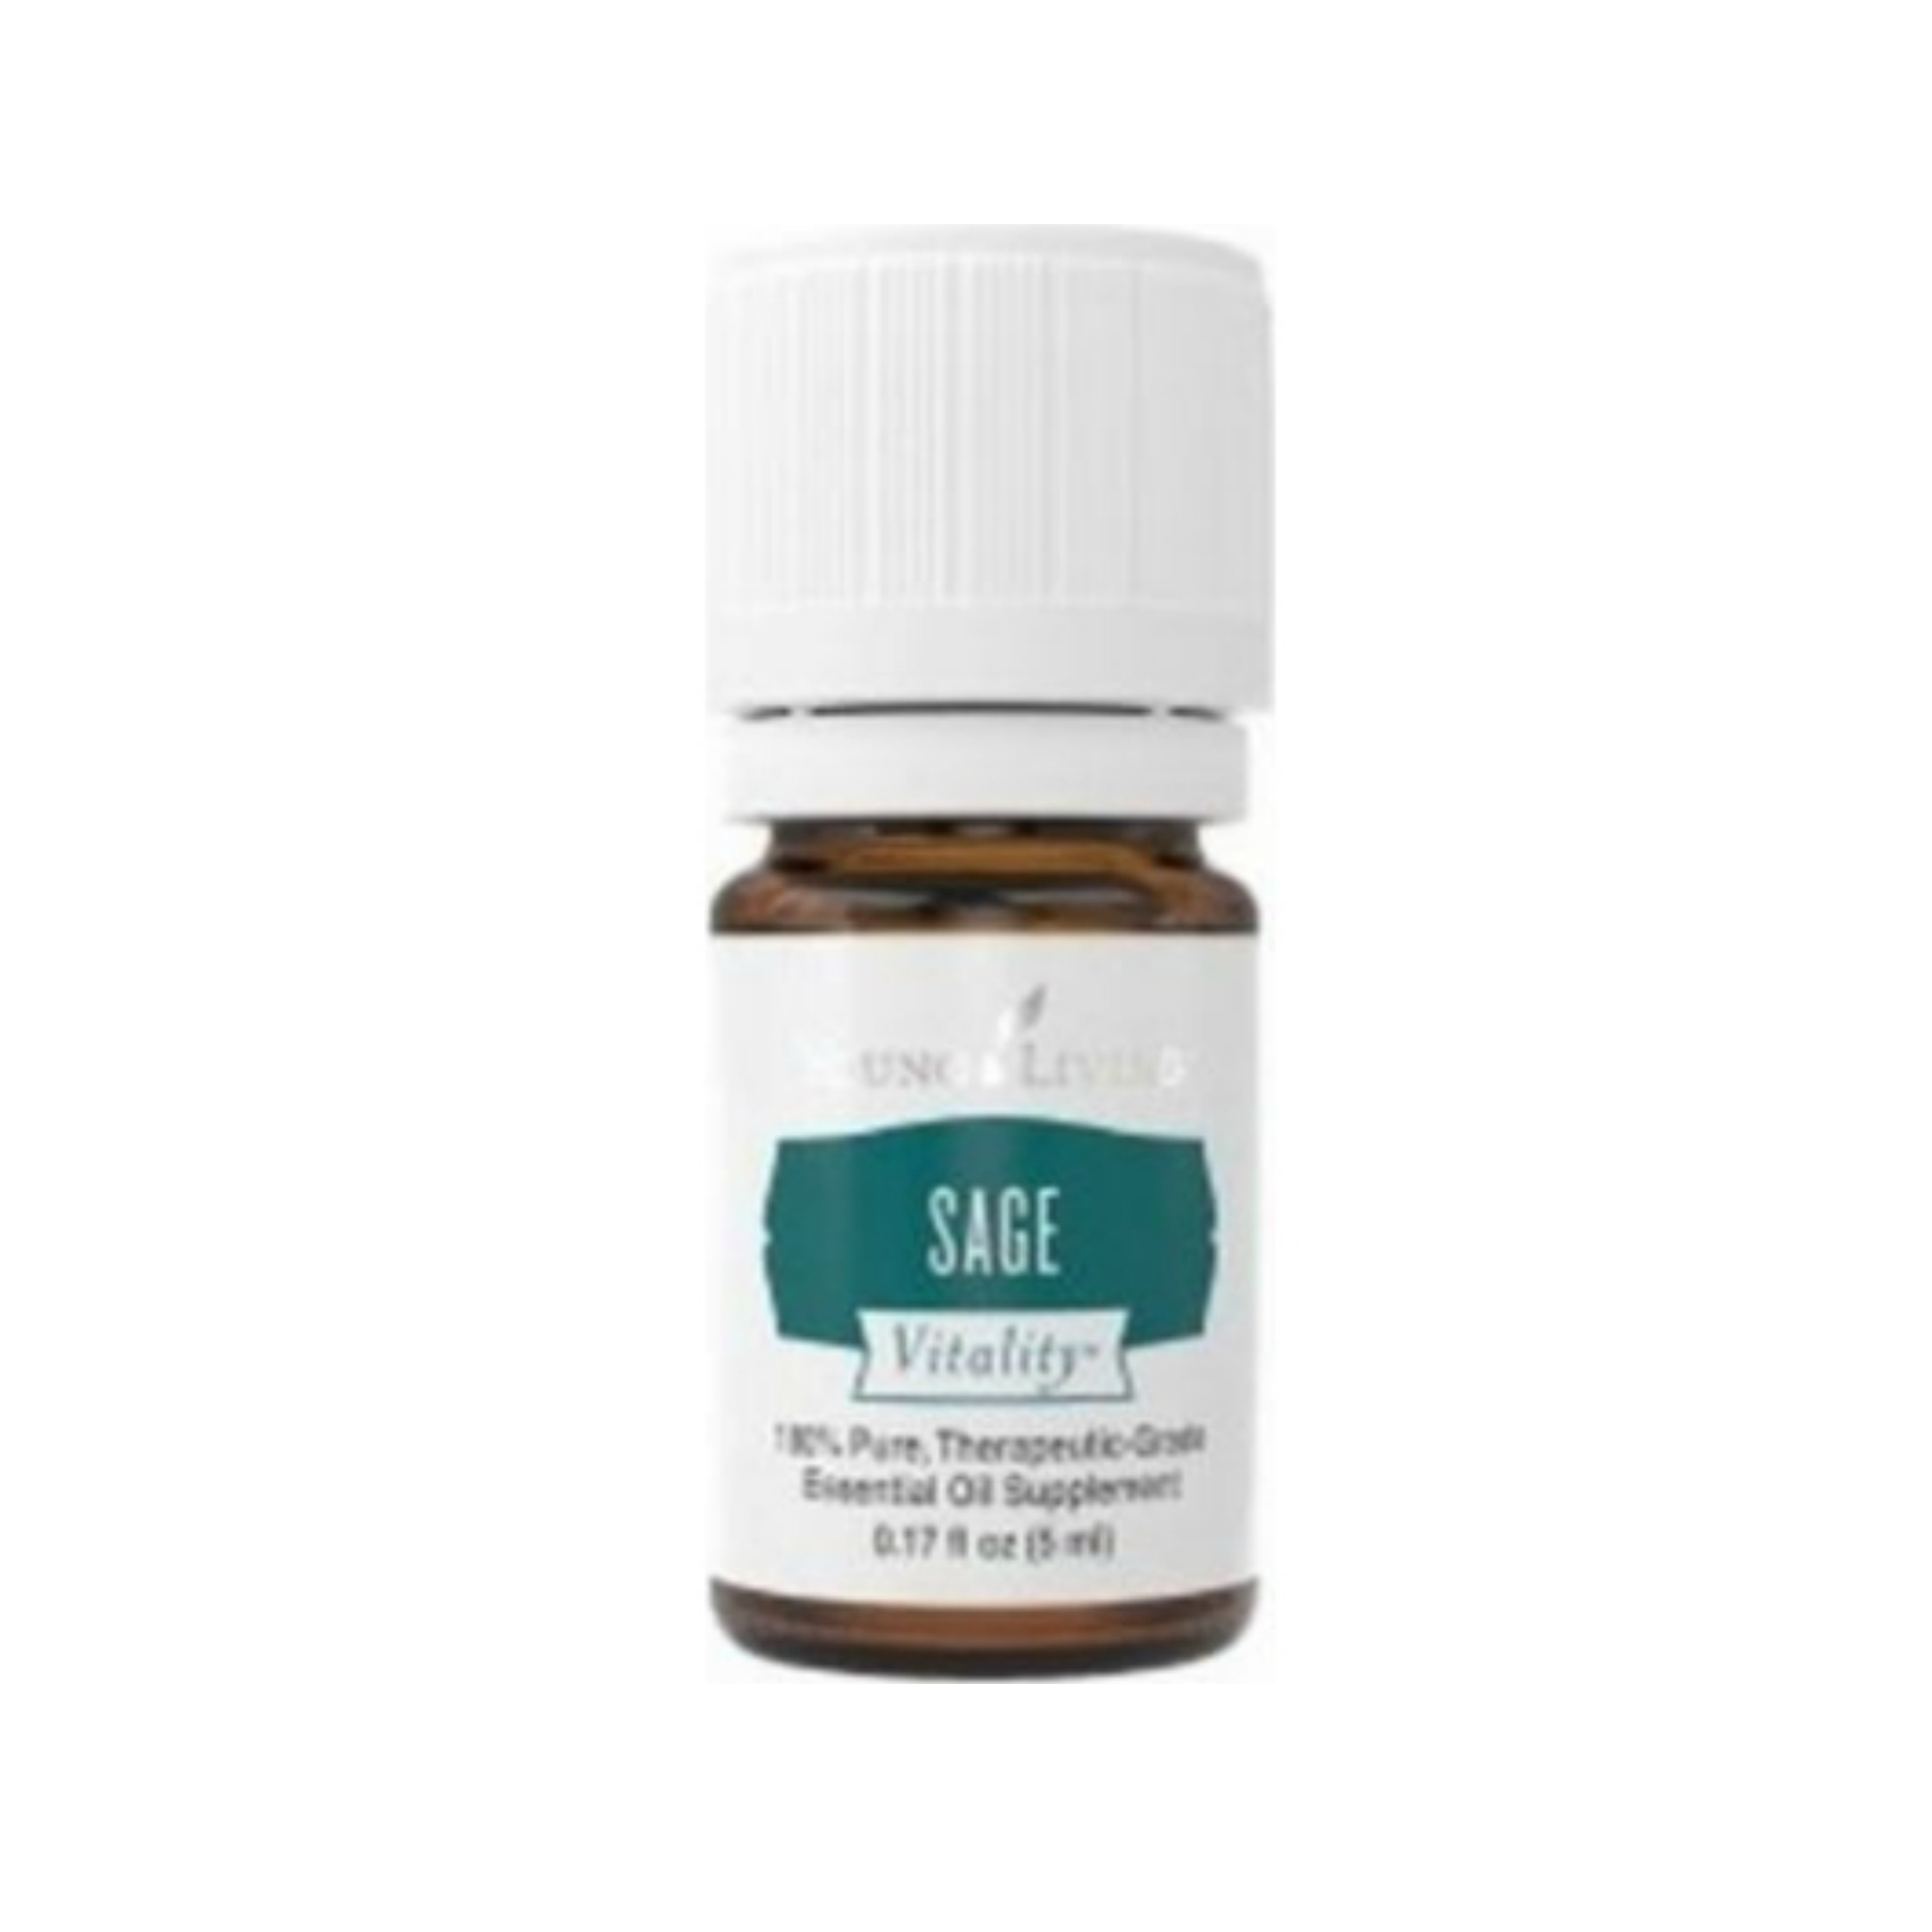 SAGE VITALITY    The sage plant is a member of the mint family. Sage Vitality™ is steamed distilled from the leaves and is known for its warm, earthy flavor that no Thanksgiving dinner could be without. Sage Vitality oil can also be a wonderful flavor enhancer for seafood, vegetables, breadsticks, corn breads, muffins, and other savory breads.   Click here   to learn more about this product.